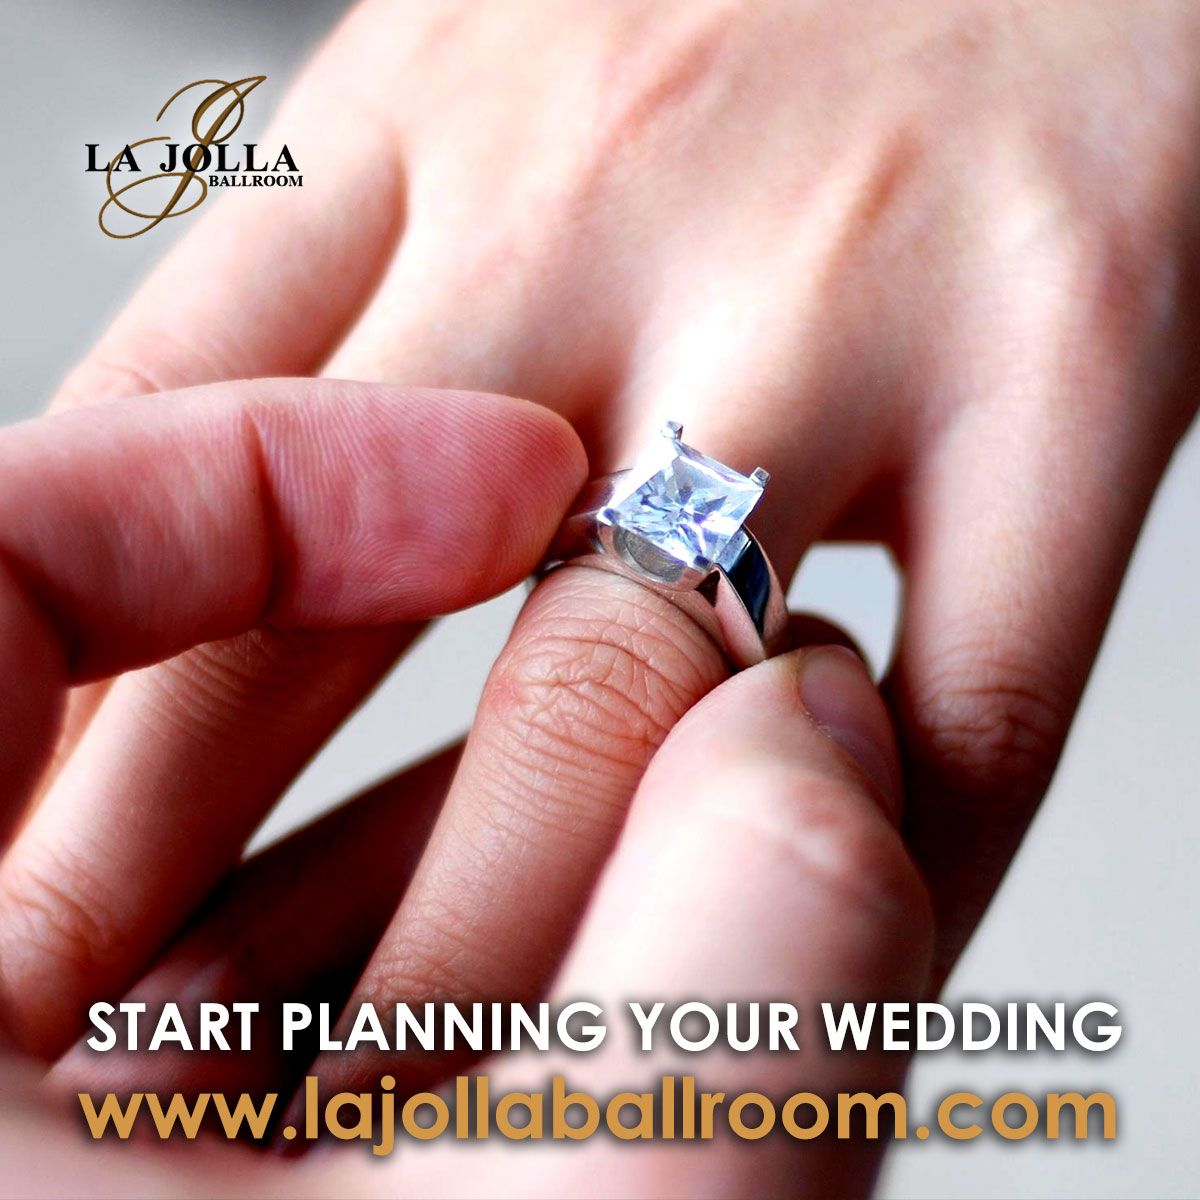 Call us to start planning your wedding at La Jolla Ballroom the best ...